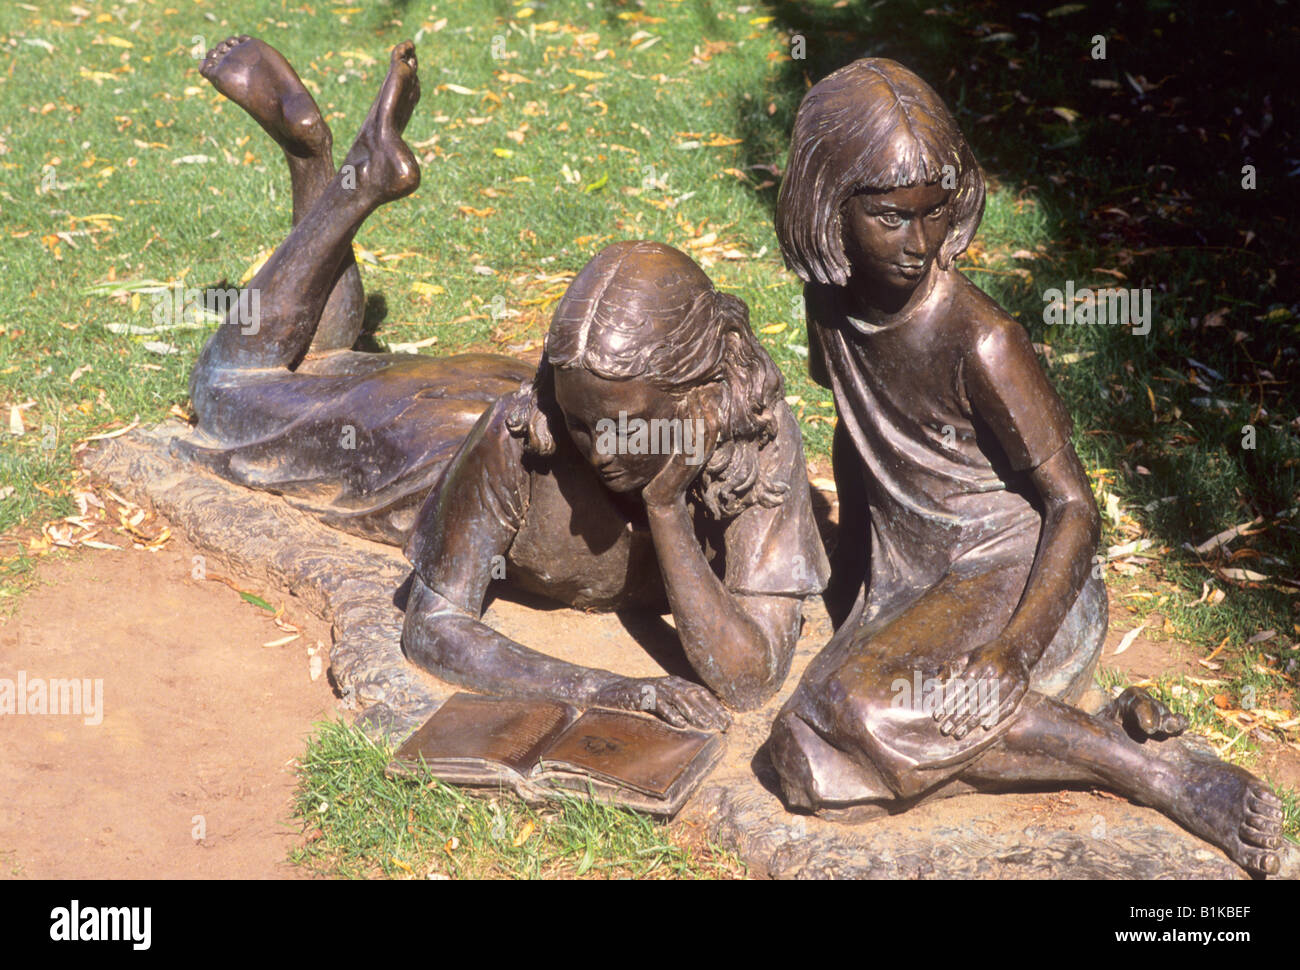 Guildford Alice in Wonderland and sister bronze figures Millmead Lewis Carroll author Edwin Russell sculptor near - Stock Image